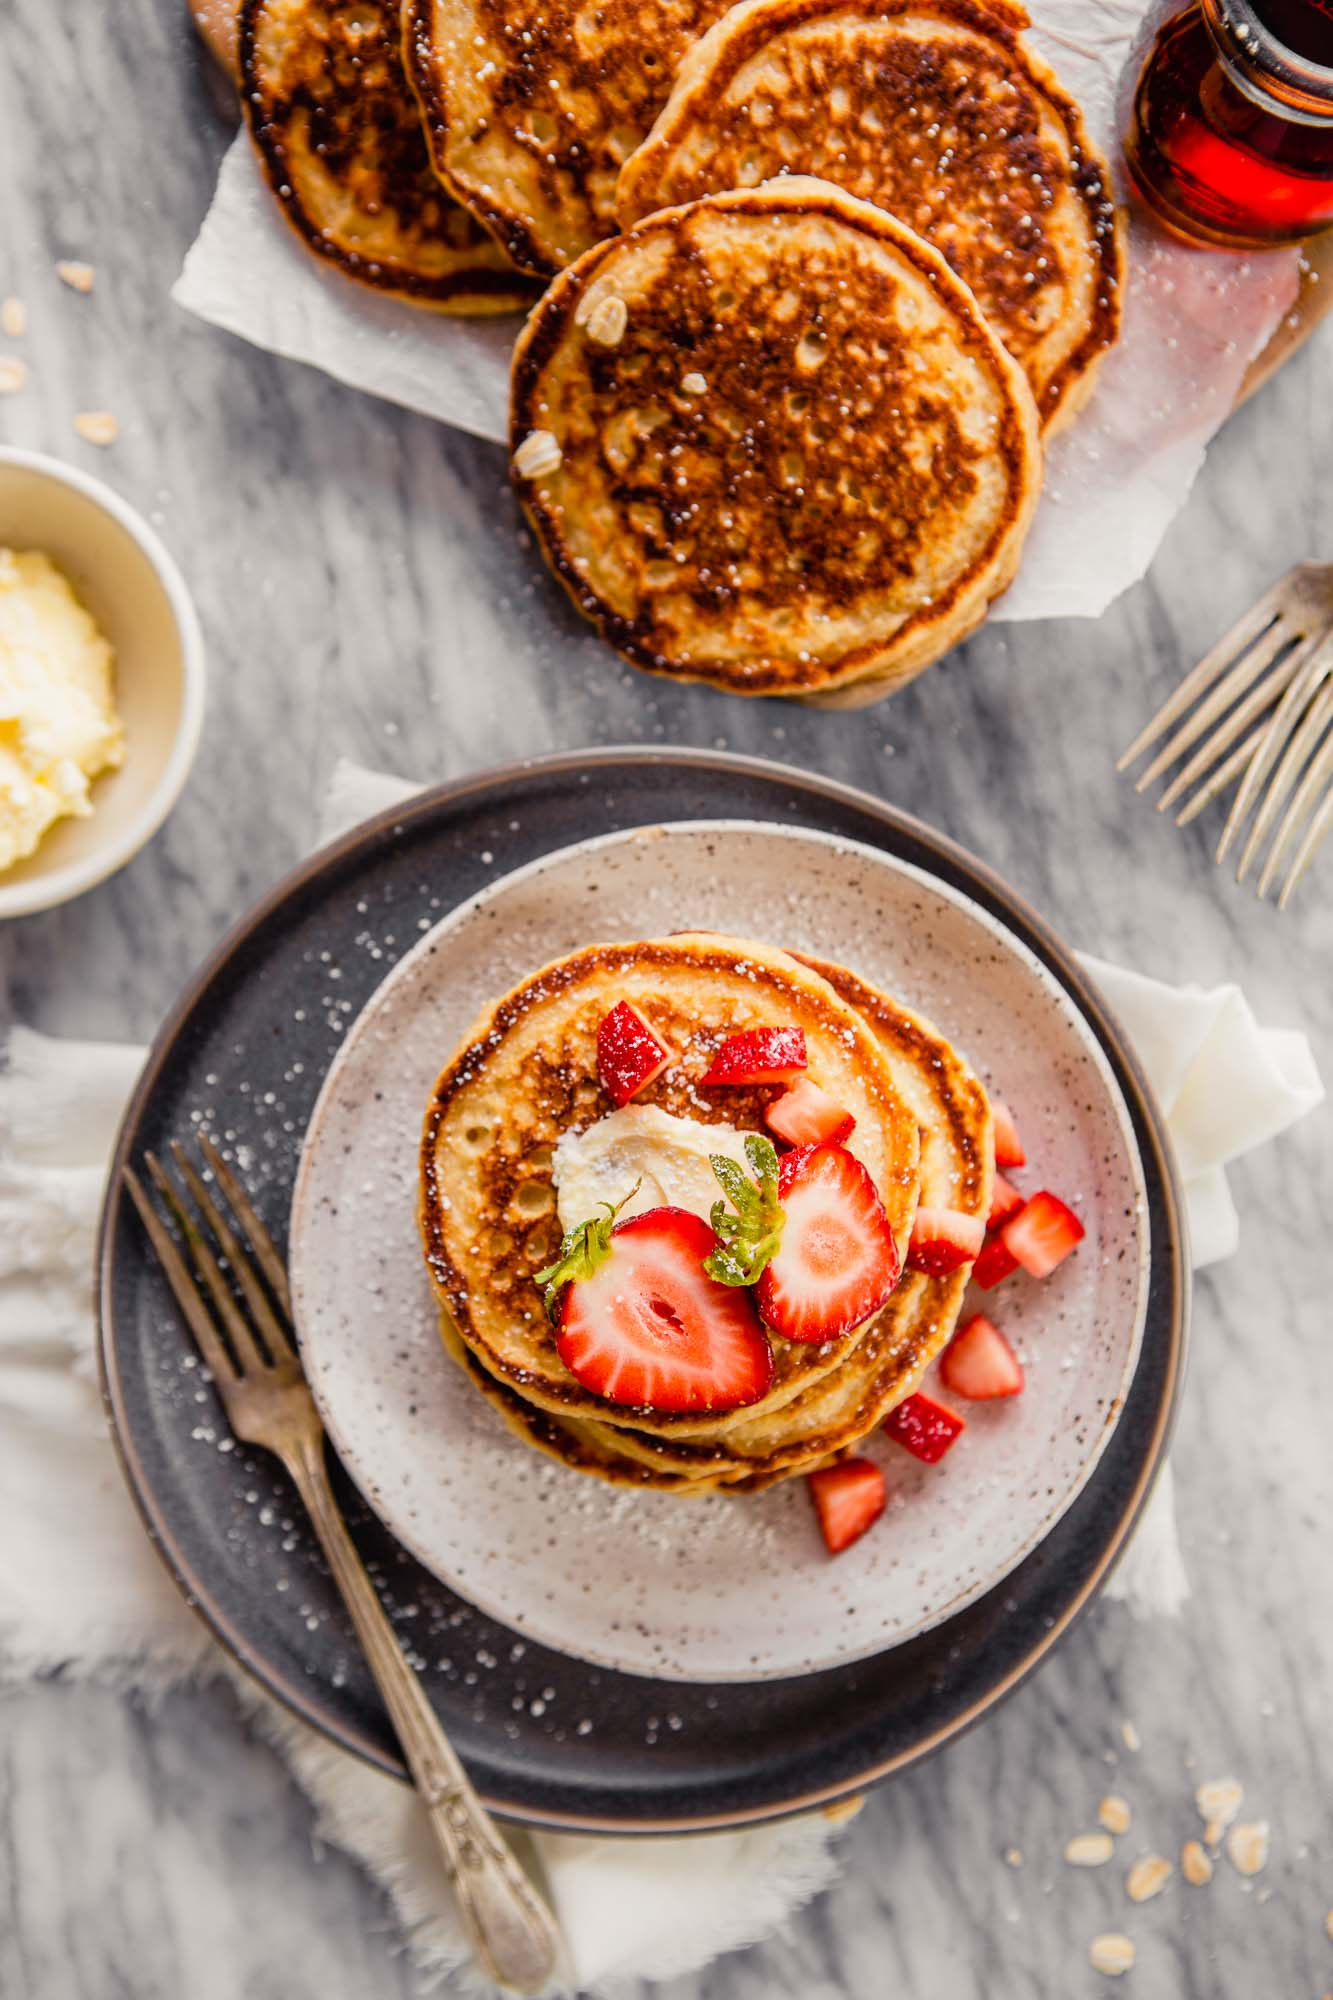 Overhead photo of pancakes stacked on a plate and pancakes arranged on a wooden platter with butter and maple syrup off to the side.